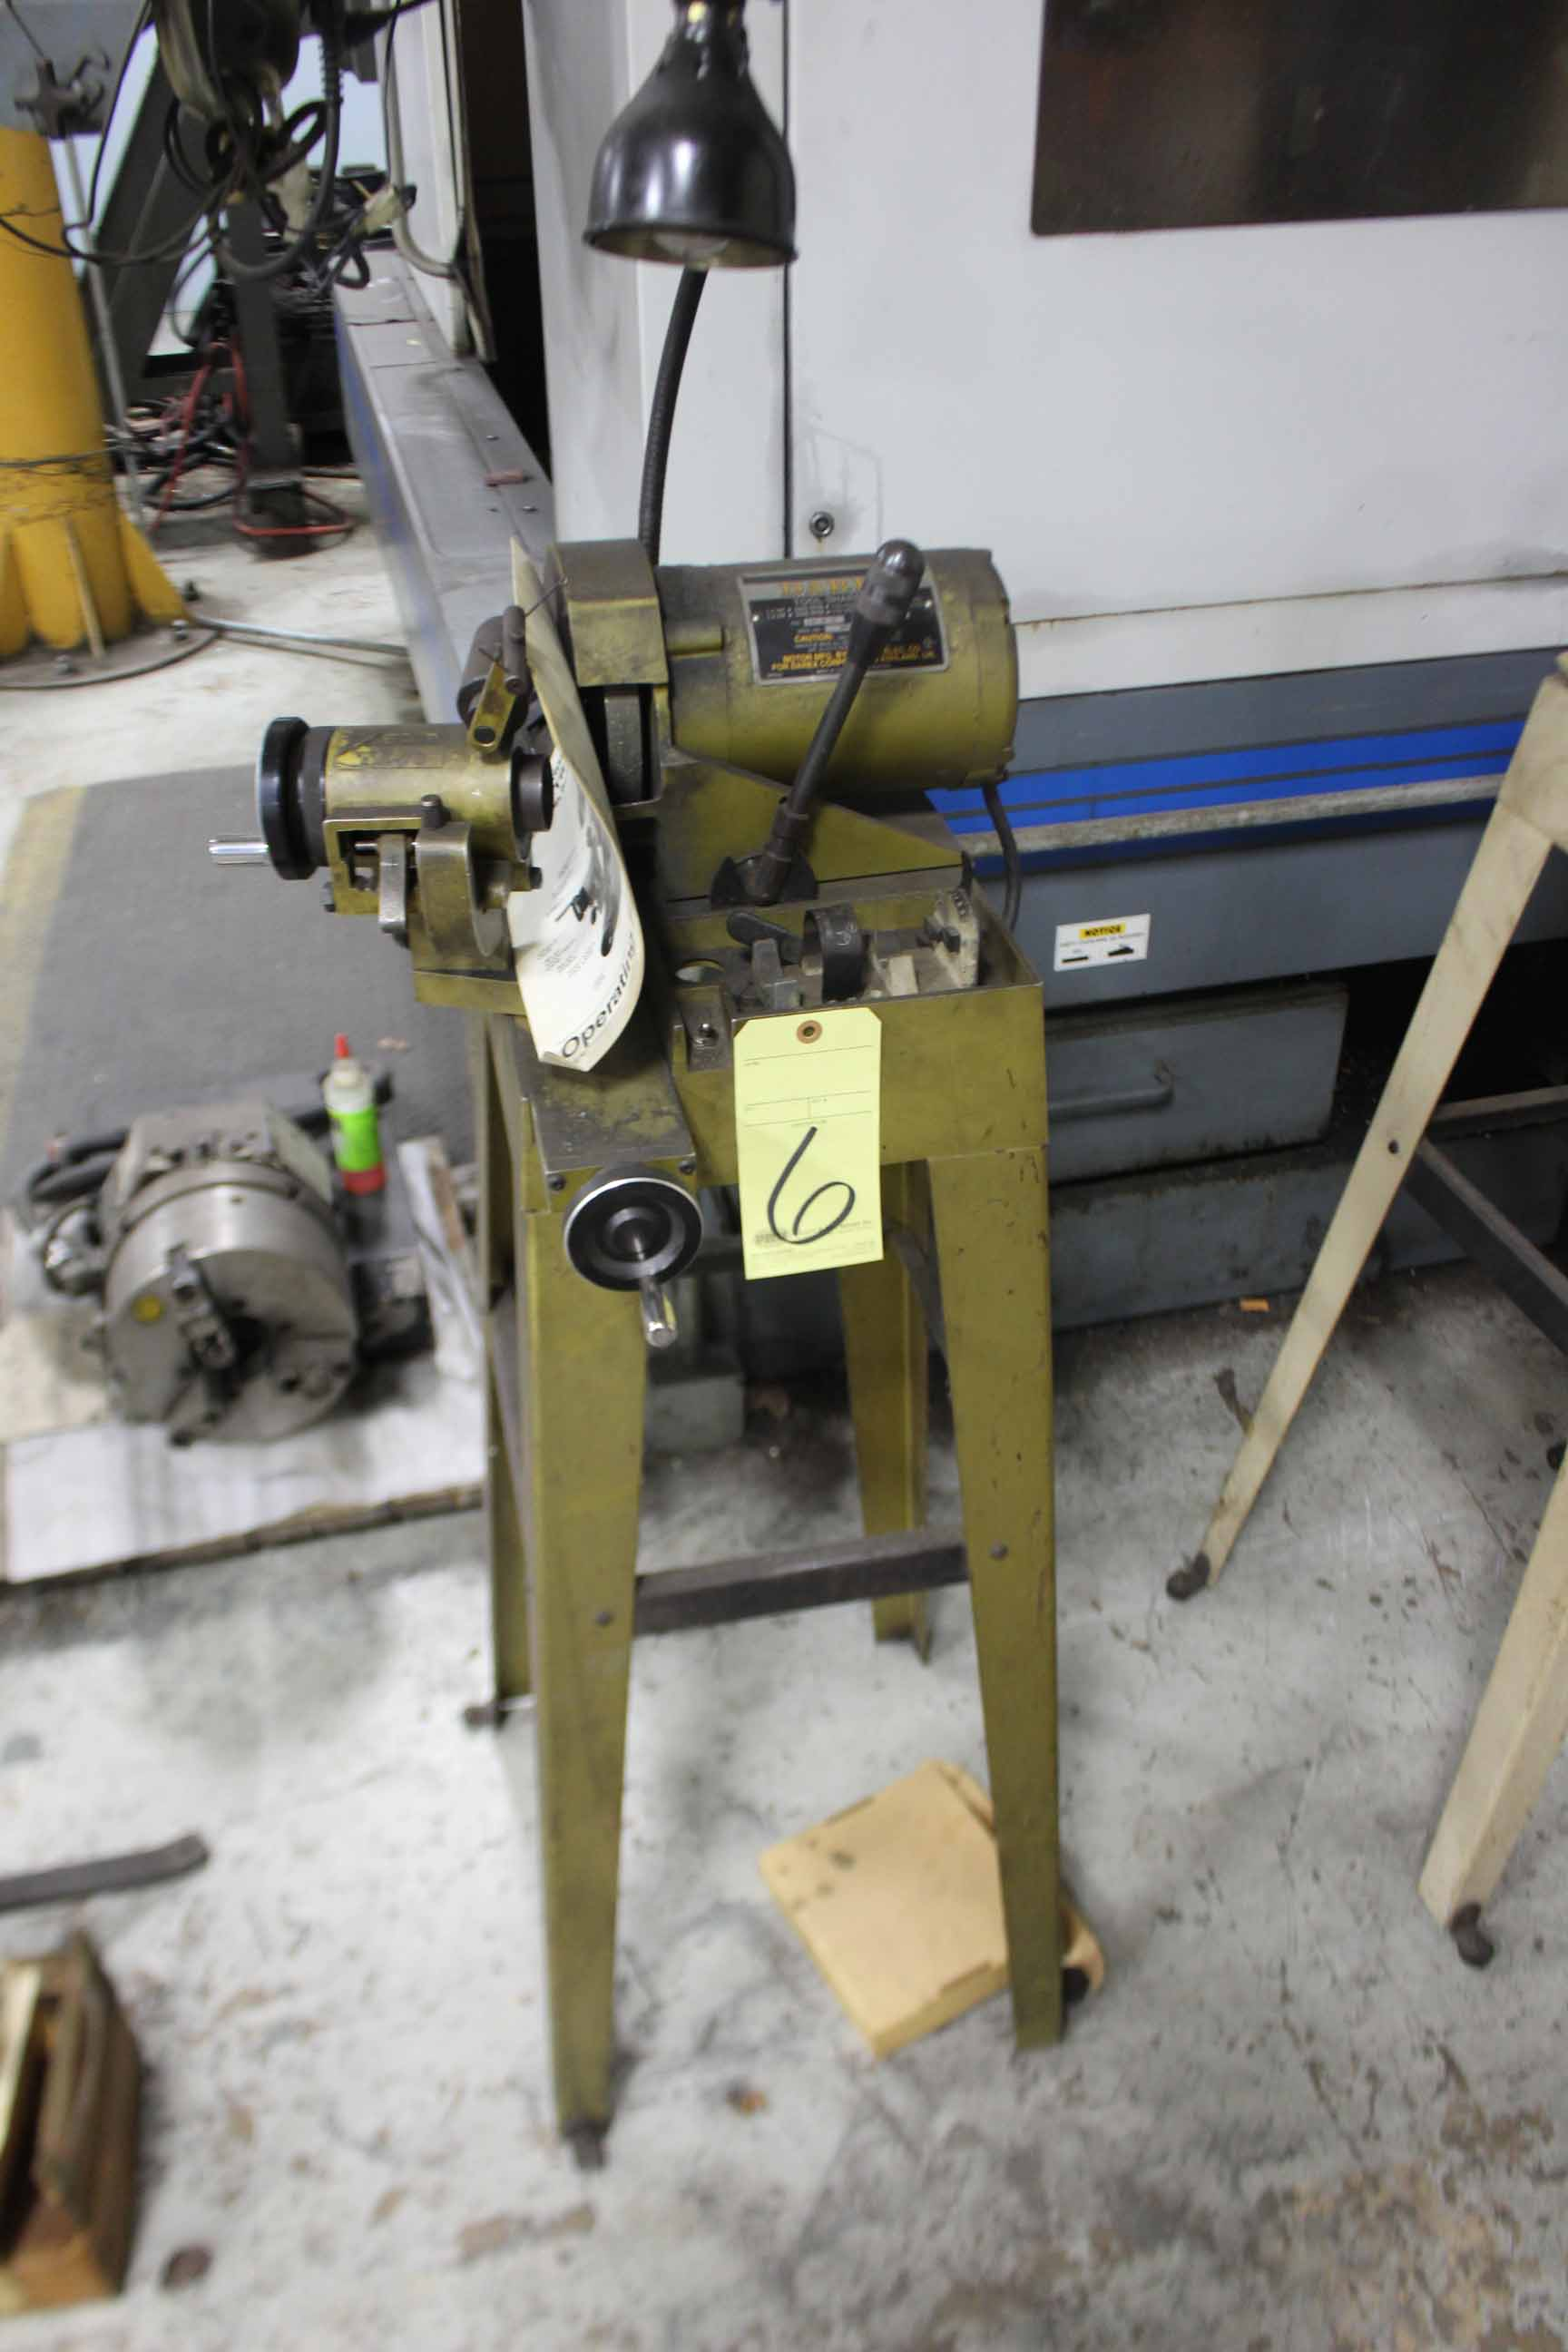 Lot 6 - DRILL SHARPENER, DAREX, 1/4 HP motor, S/N 70549